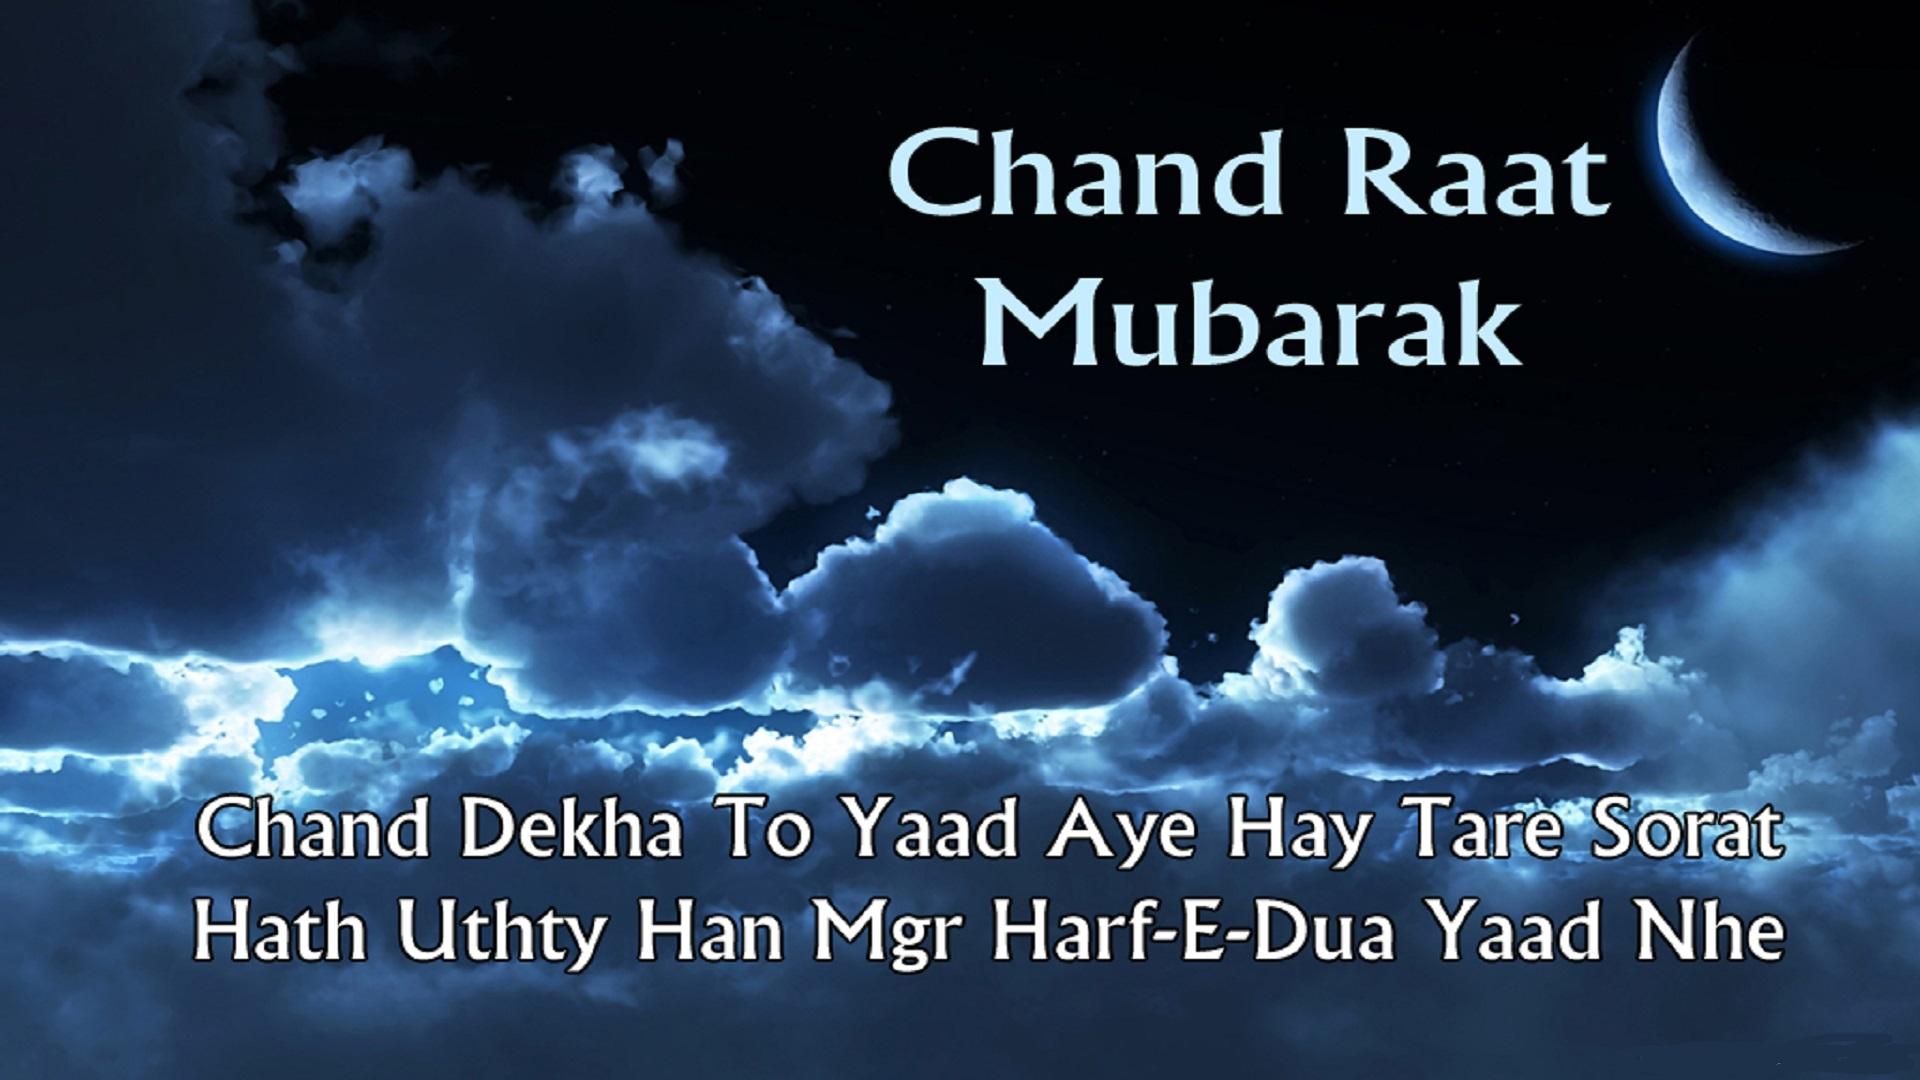 Chand Raat Mubarak Wallpapers 1